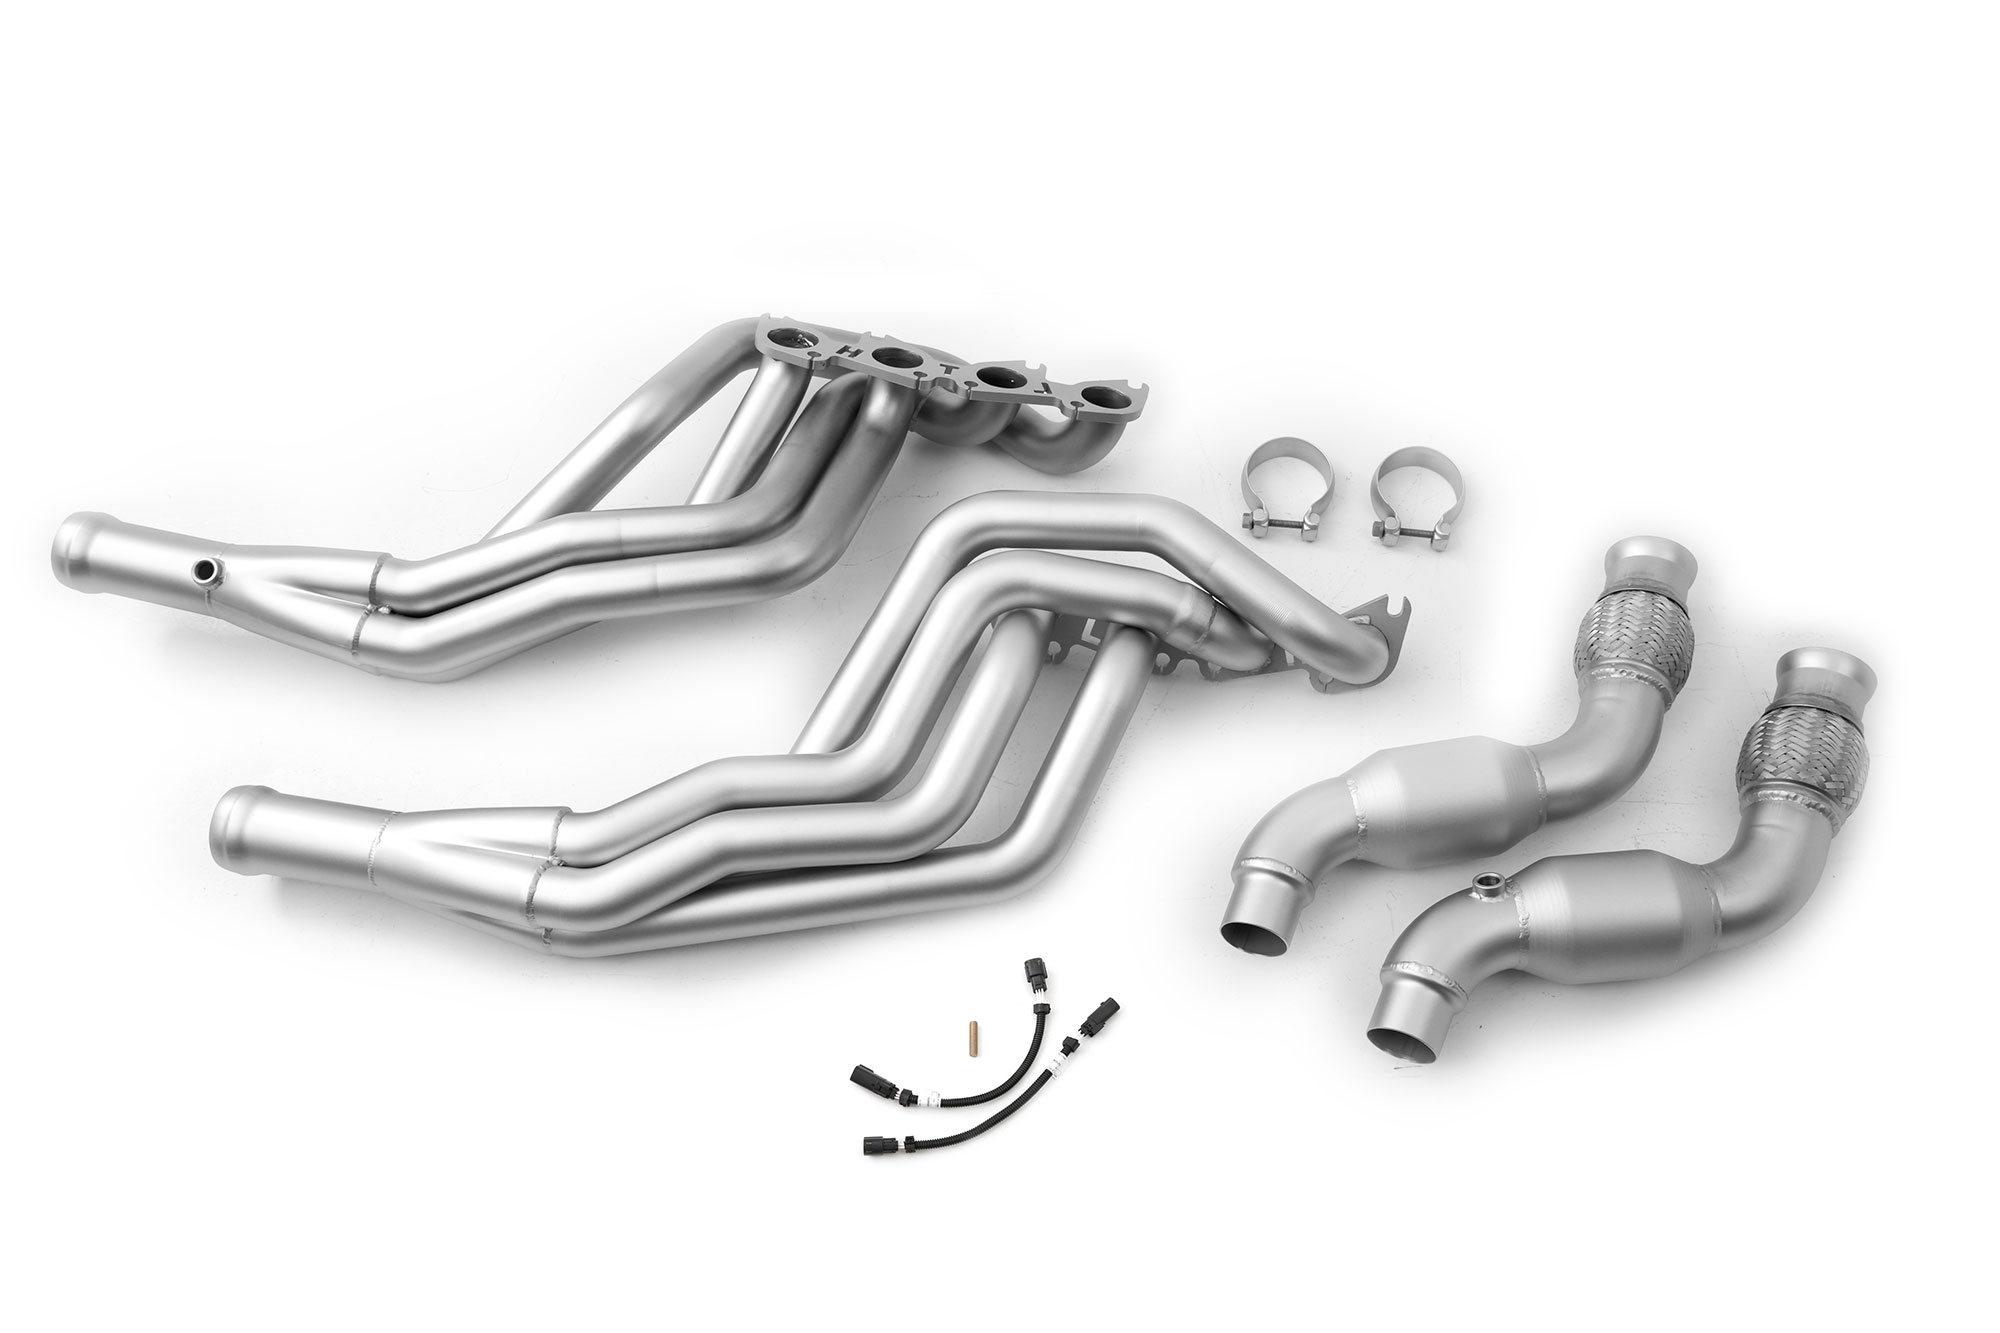 LTH Mustang GT Equal Length Long Tube Headers 1-7/8